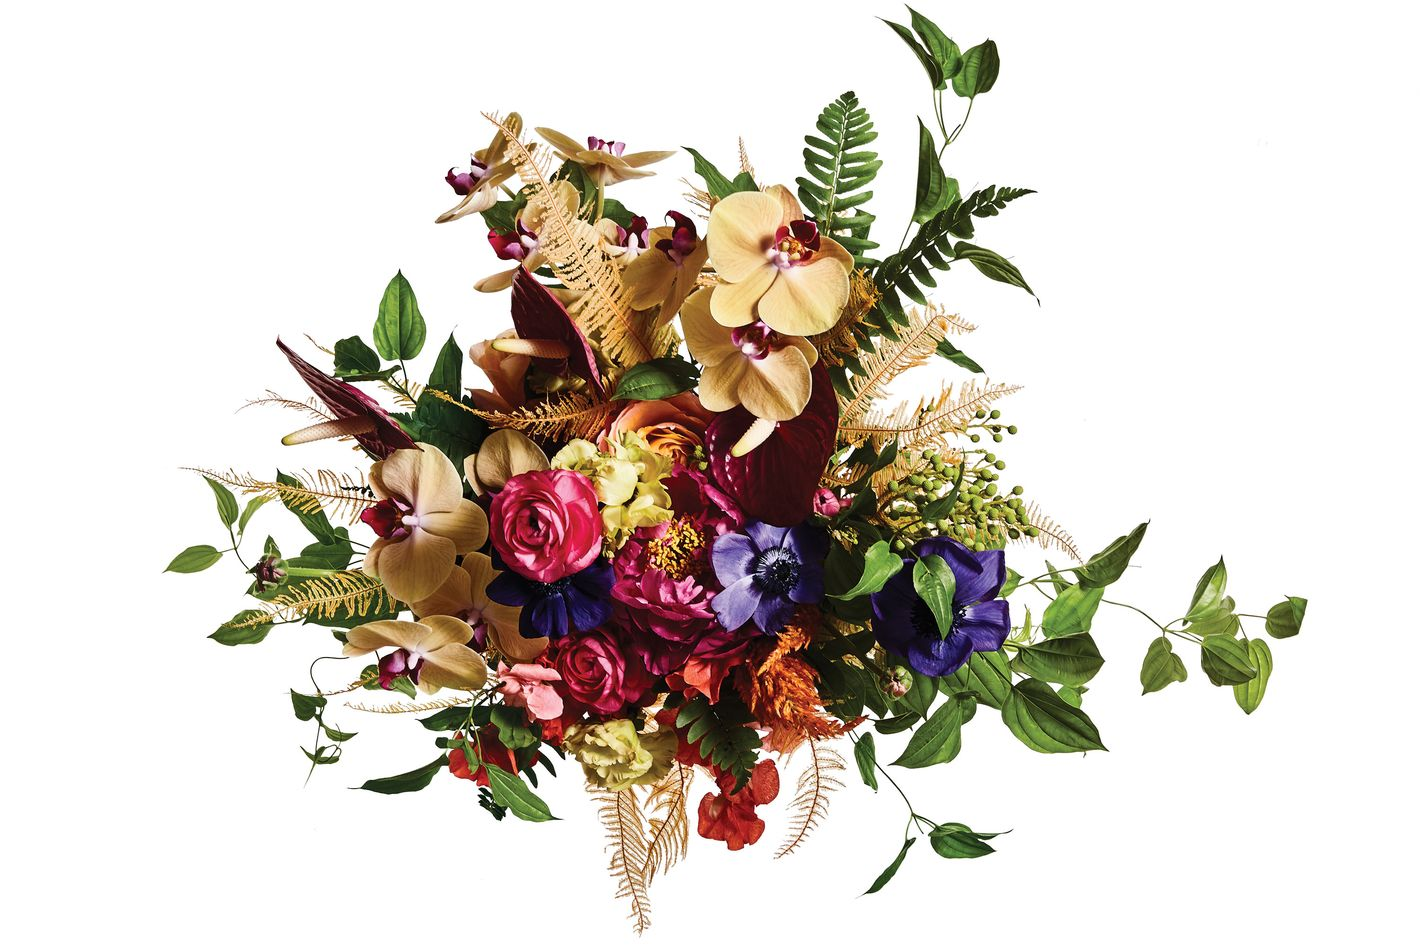 Anemone, peony, ranunculus, orchid, anthurium, celosia, fern, and passion flower vine